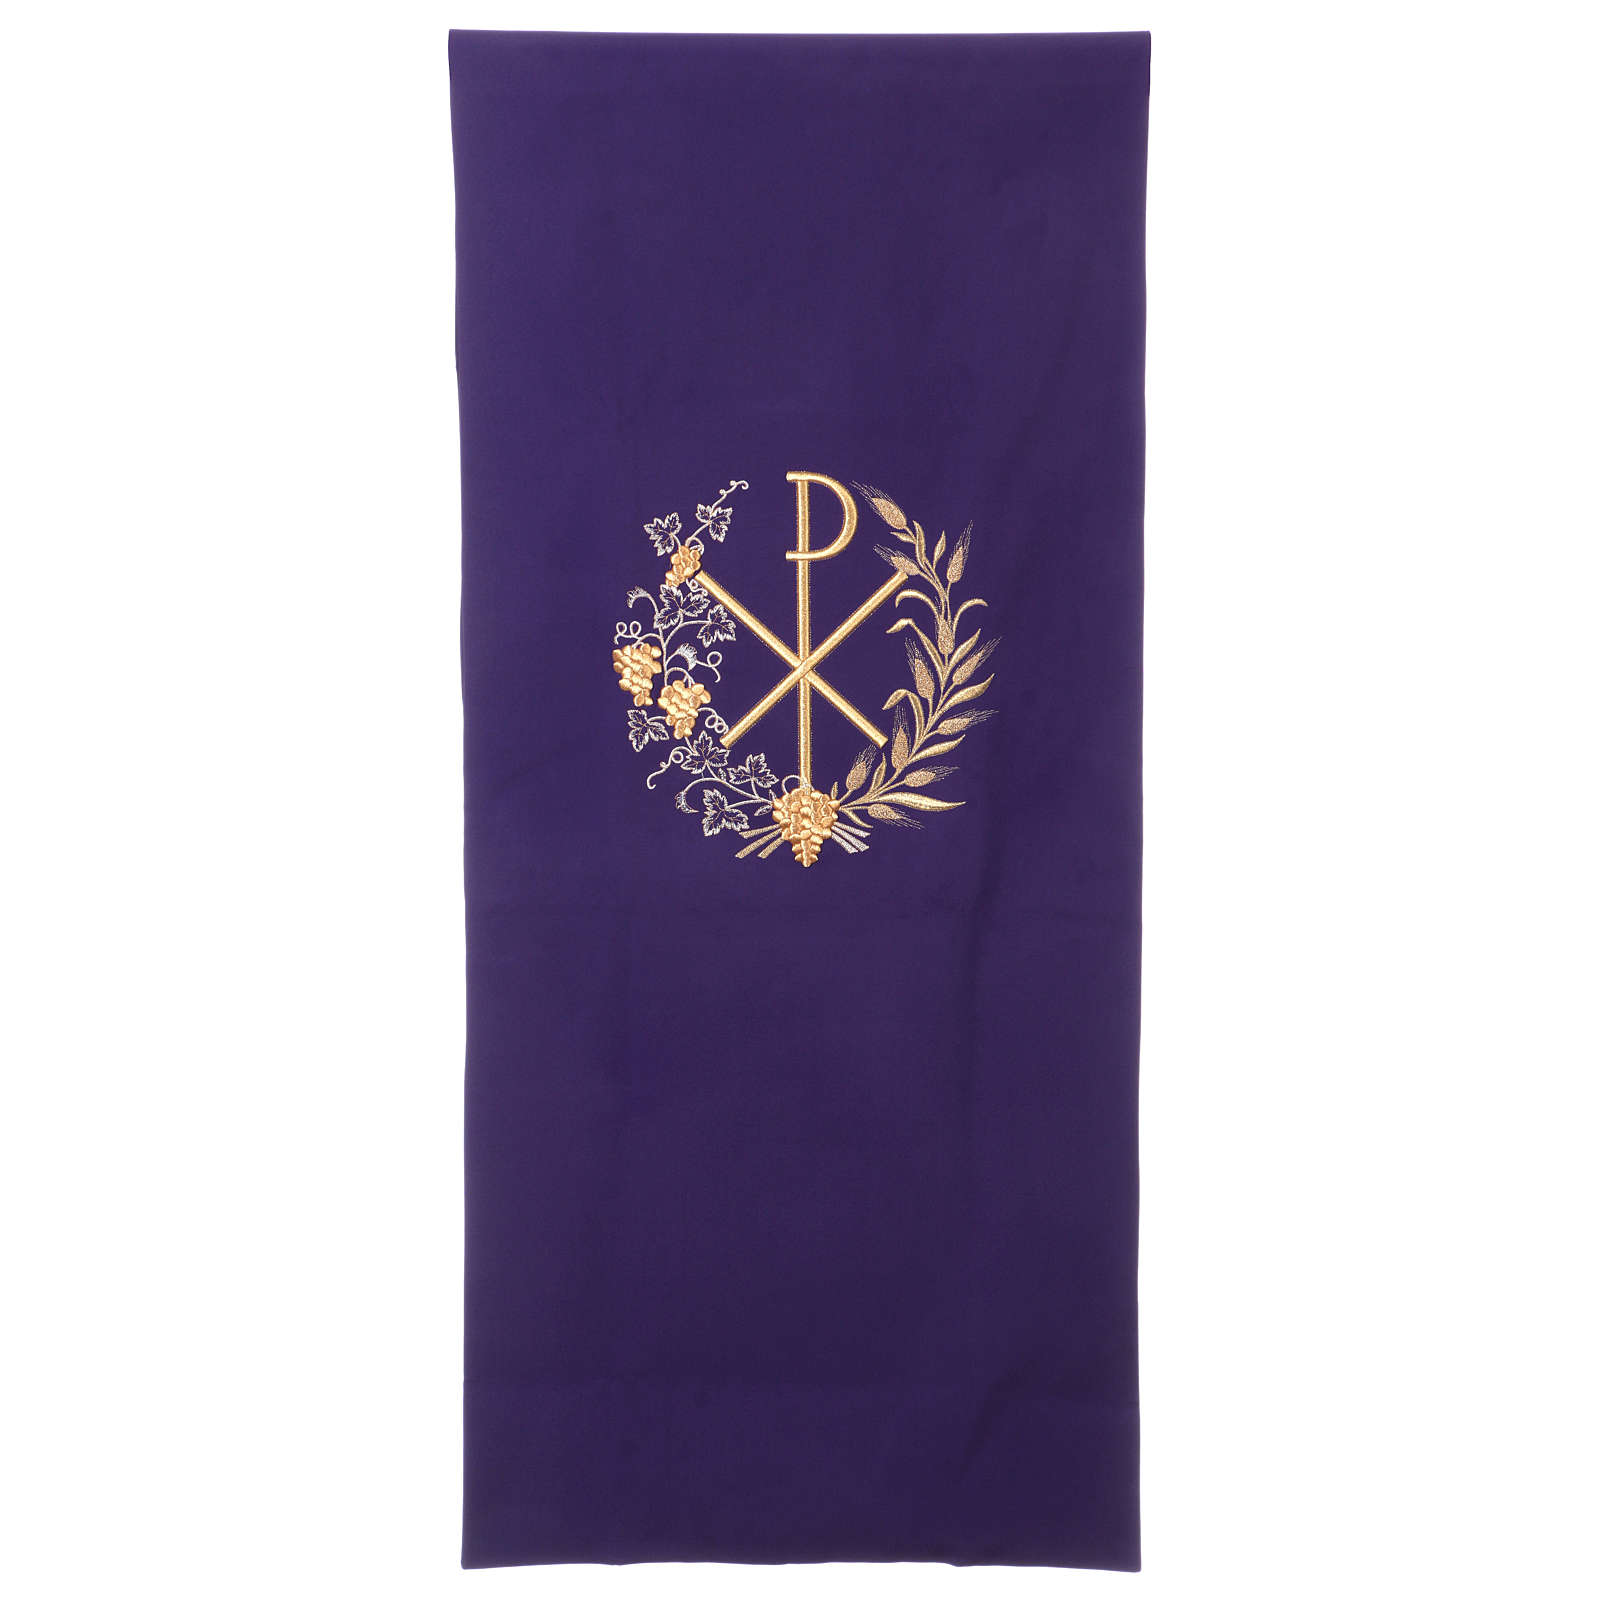 Pulpit cover with embroidered Chi-Rho symbol 4